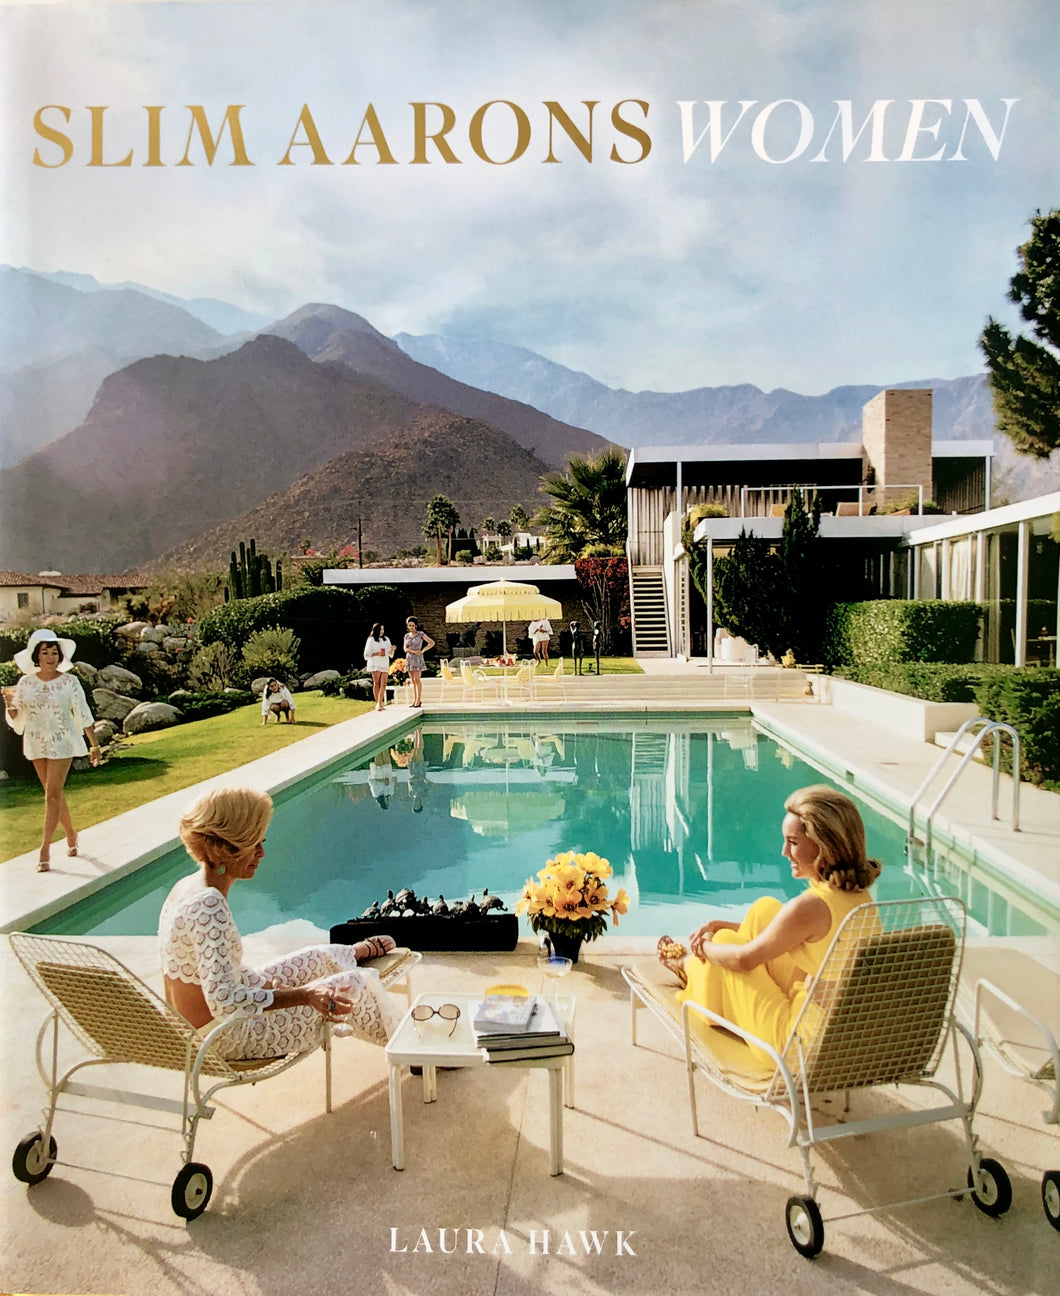 Slim Aarons: Women